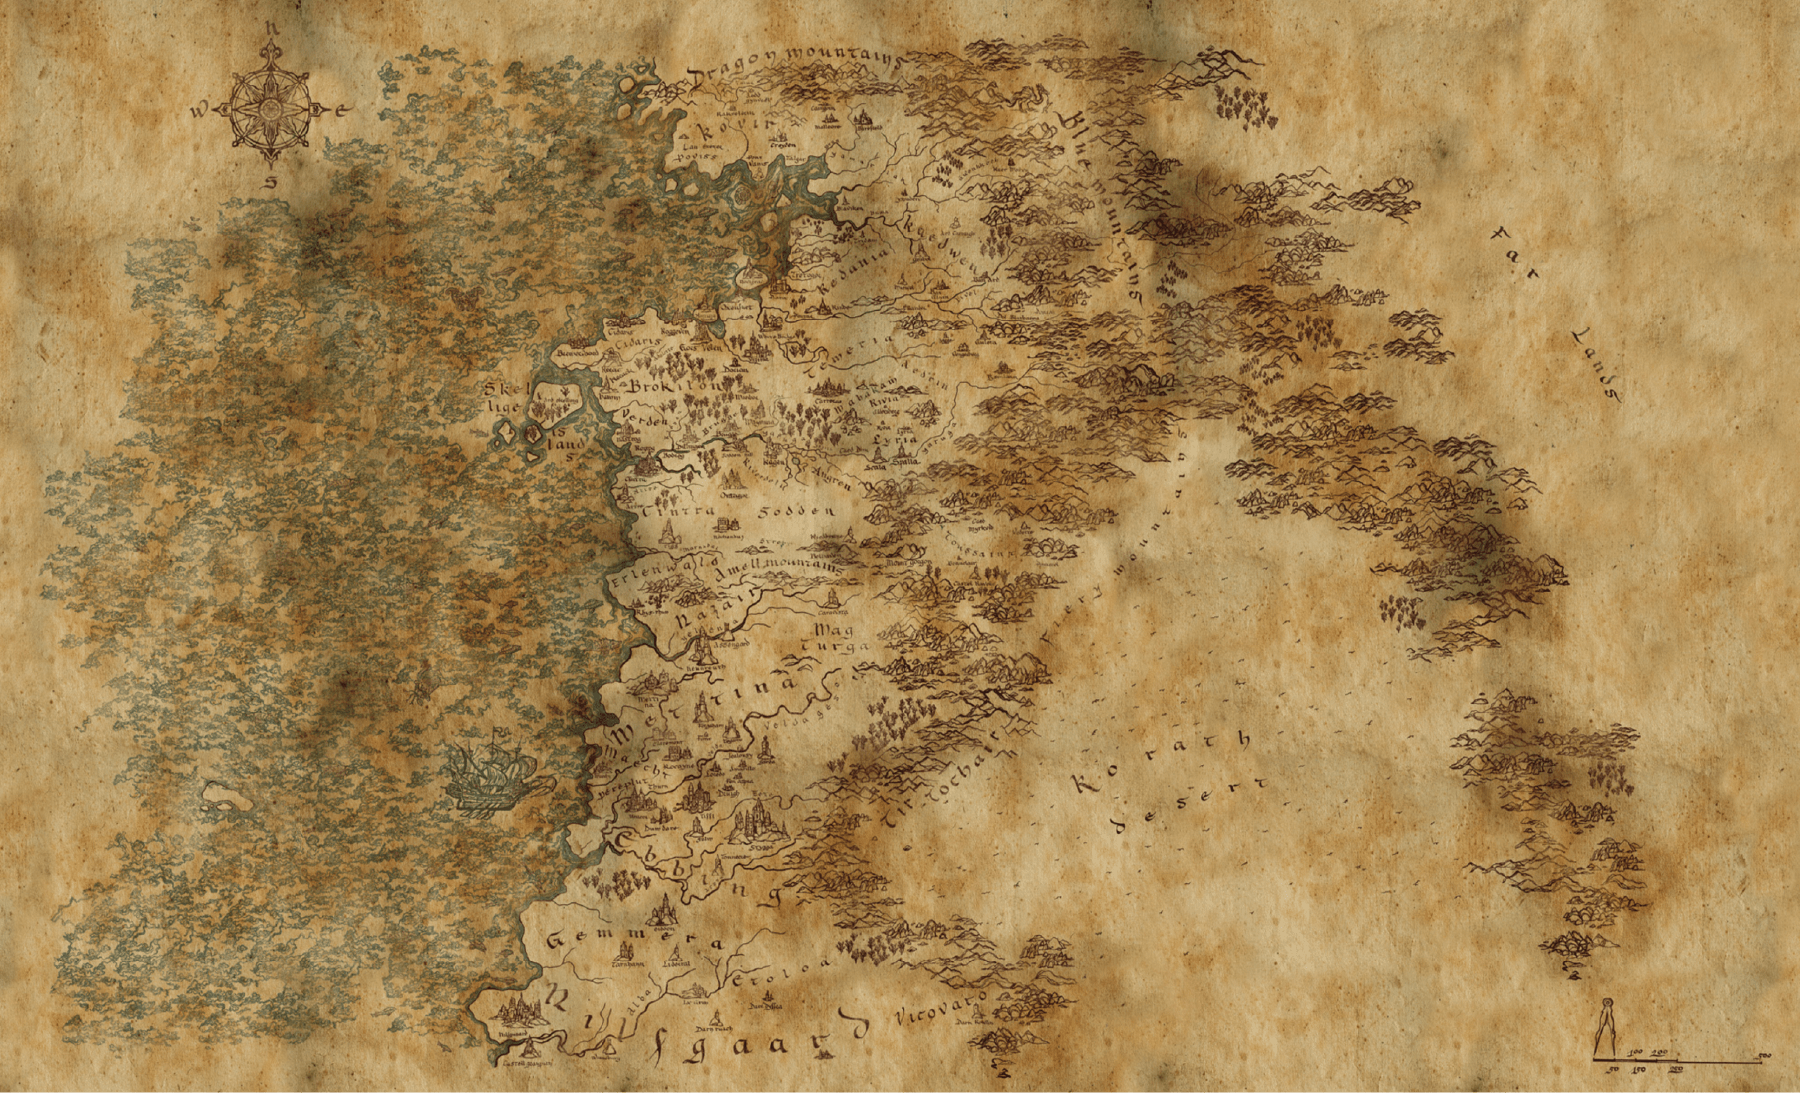 witcher map_7.png